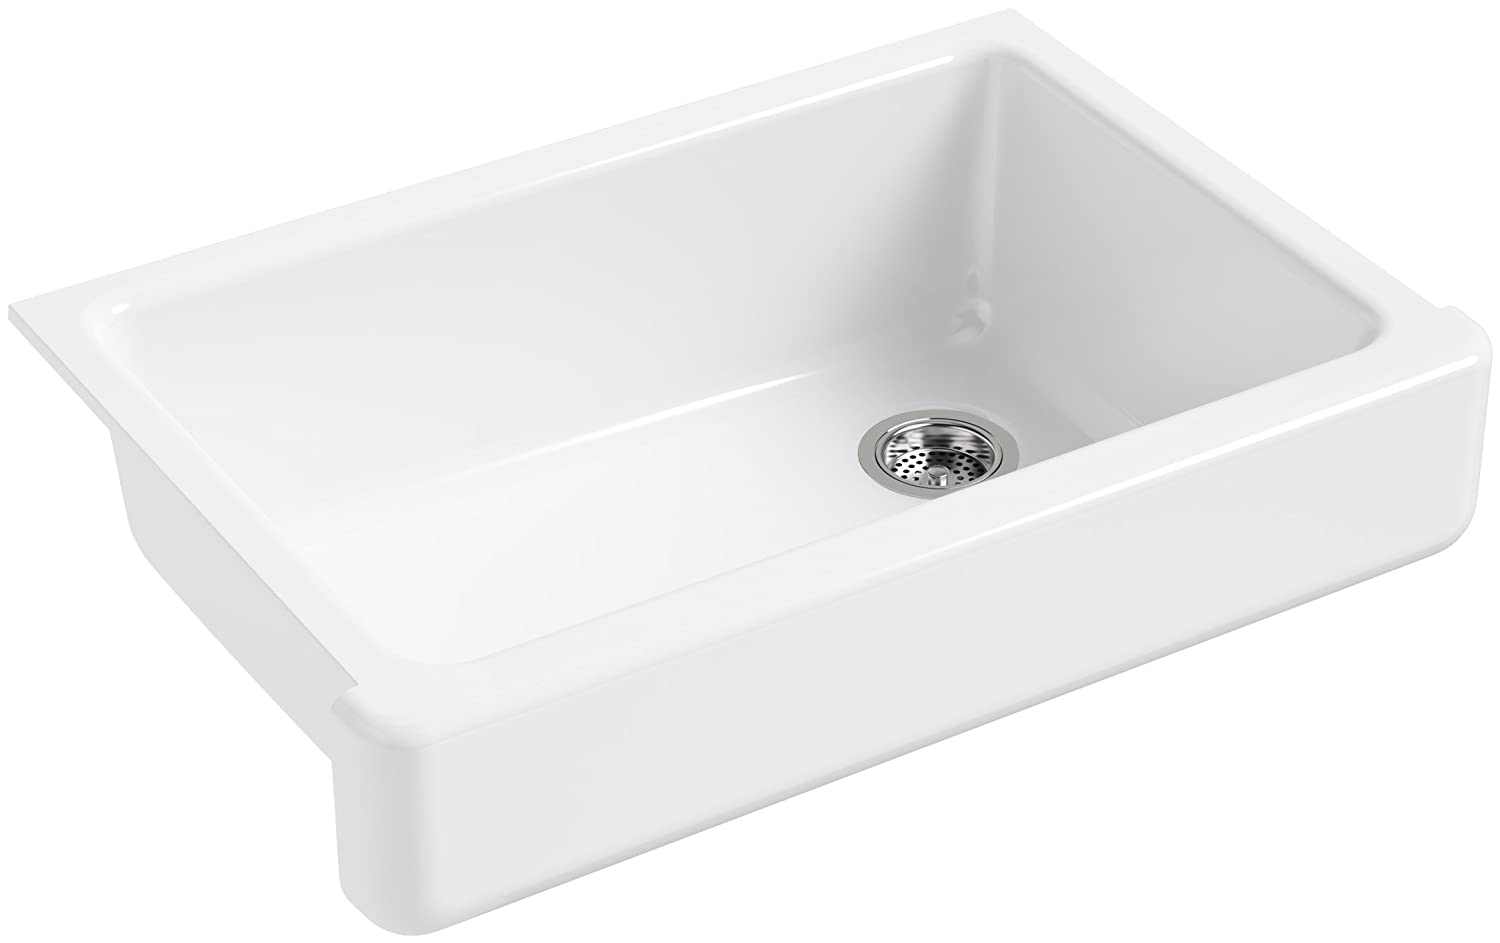 33 Inch Farmhouse Sink White : 33 Inch White Farmhouse Sink Best Kitchen Faucets